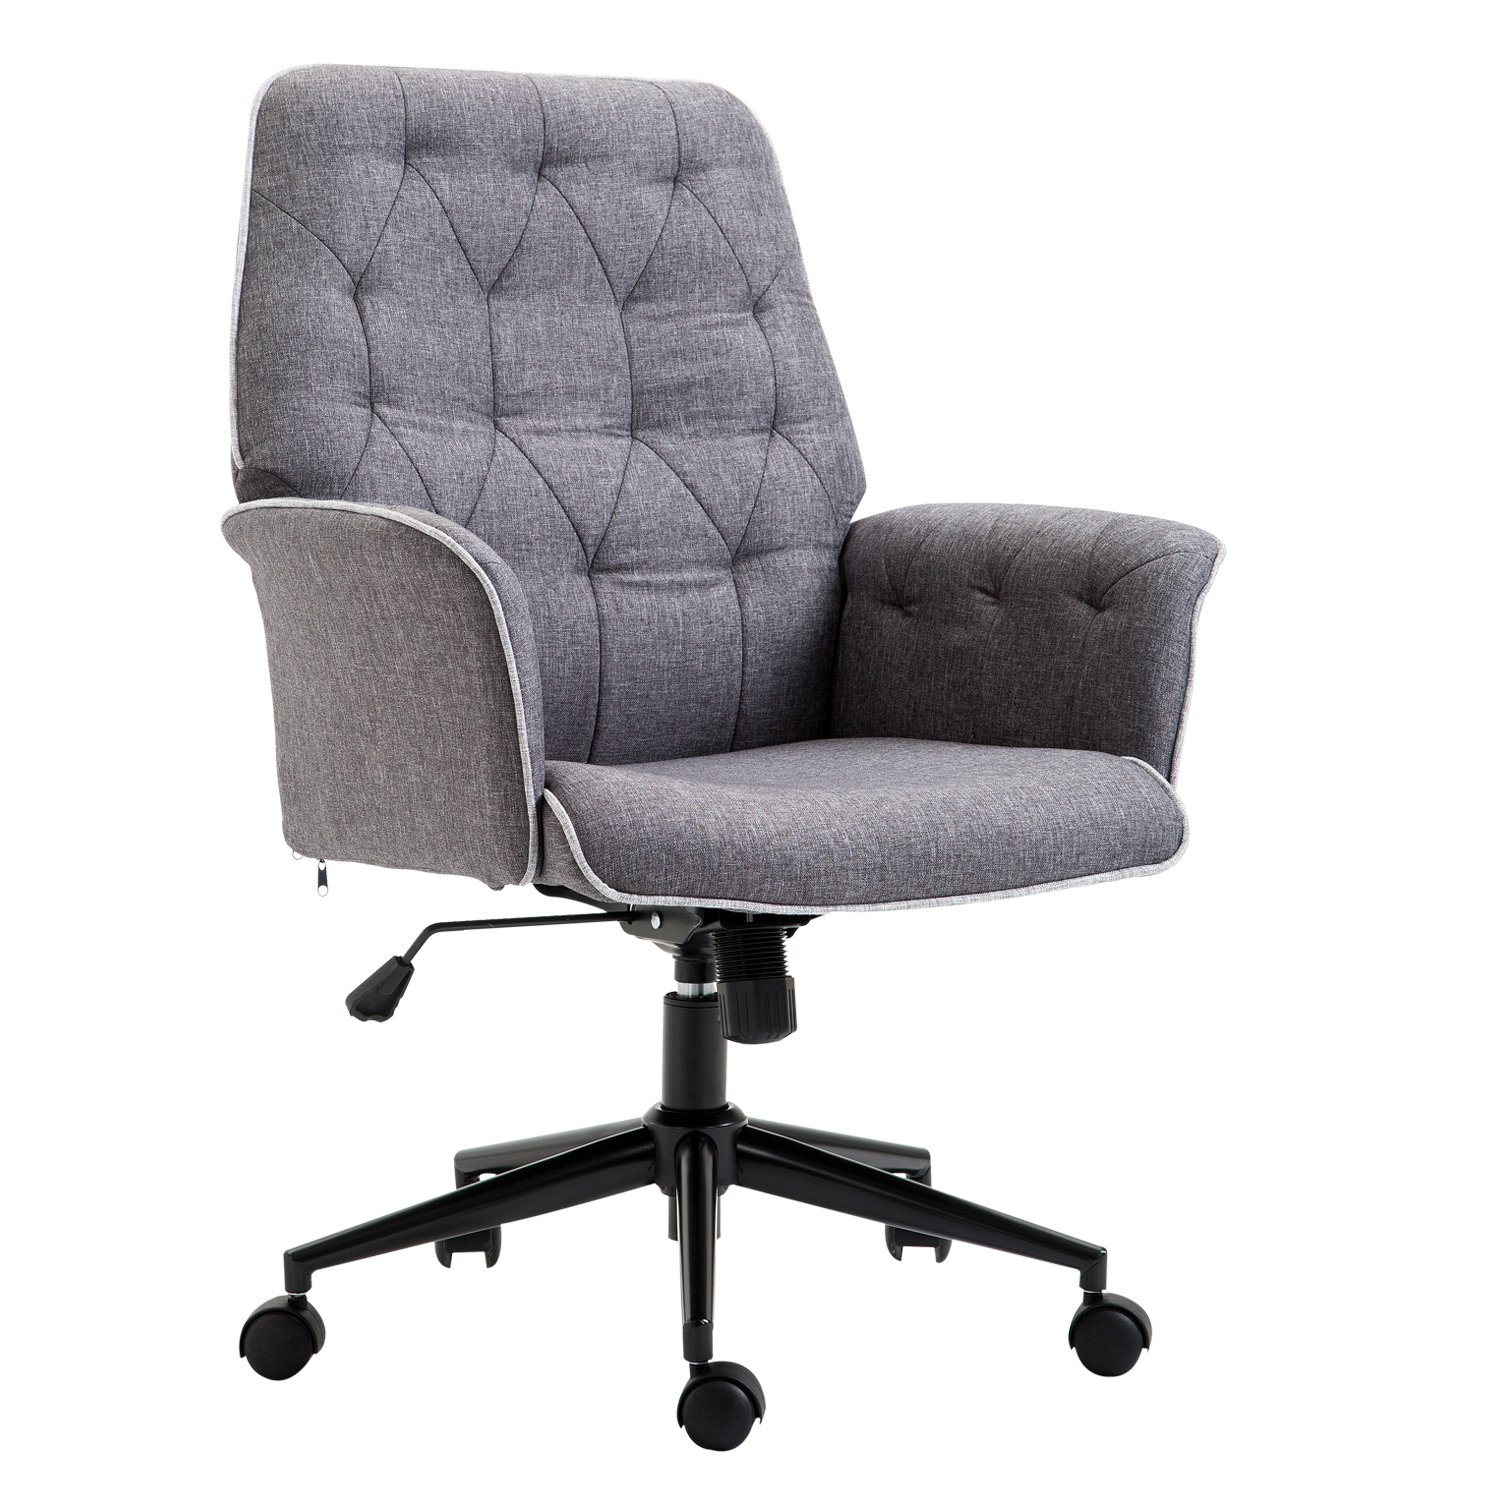 HOMCOM Adjustable Modern Linen Upholstered Office Chair with Lumbar Support and Arms by HOMCOM